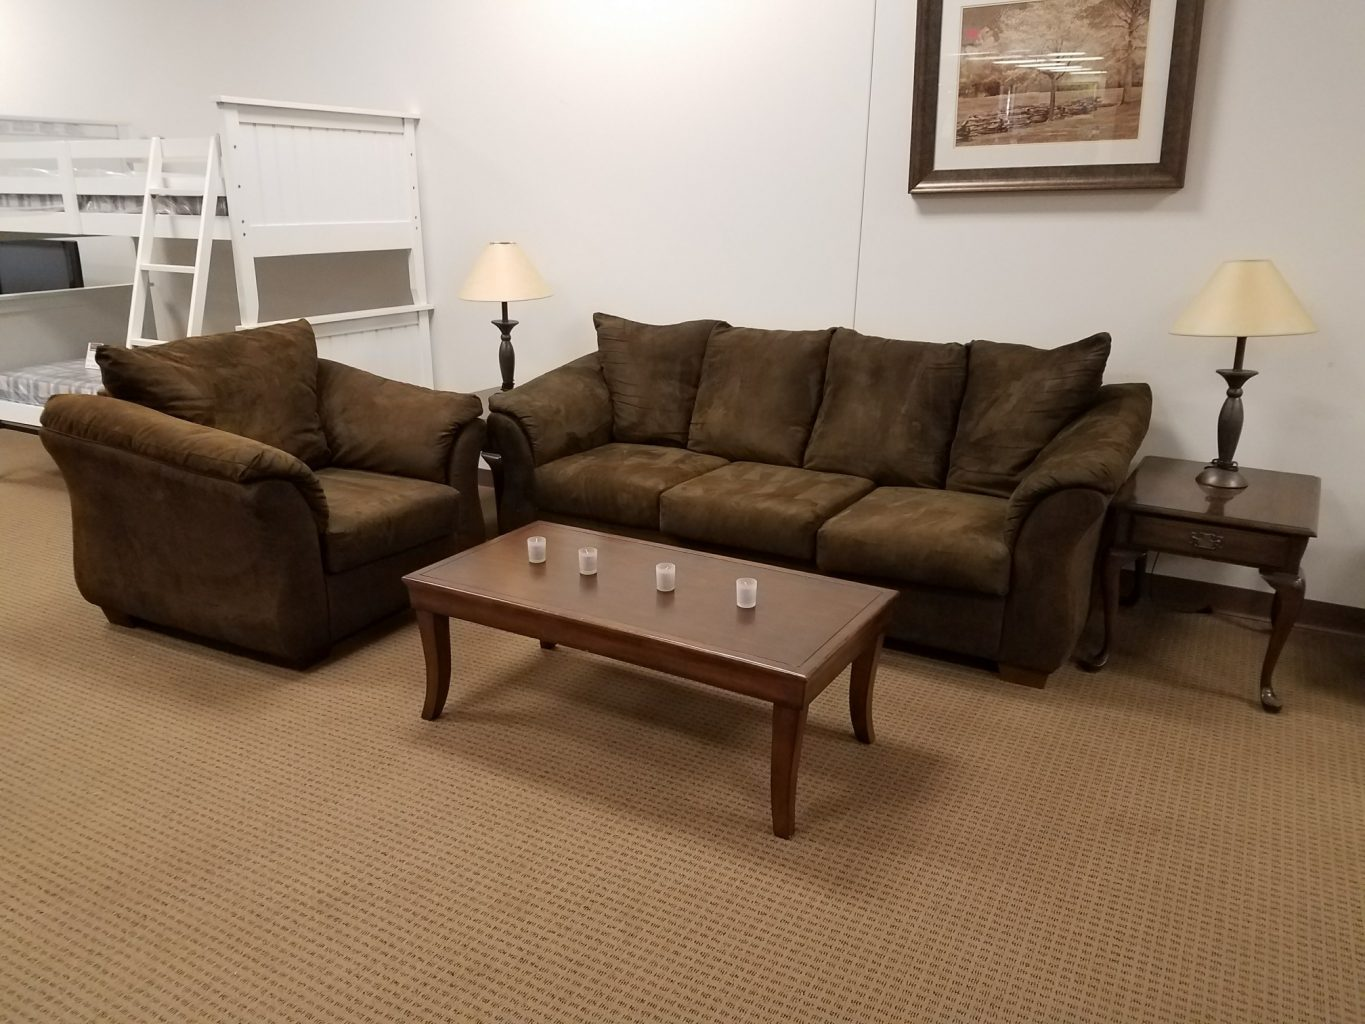 19 piece whole home furniture package Furniture in rental home